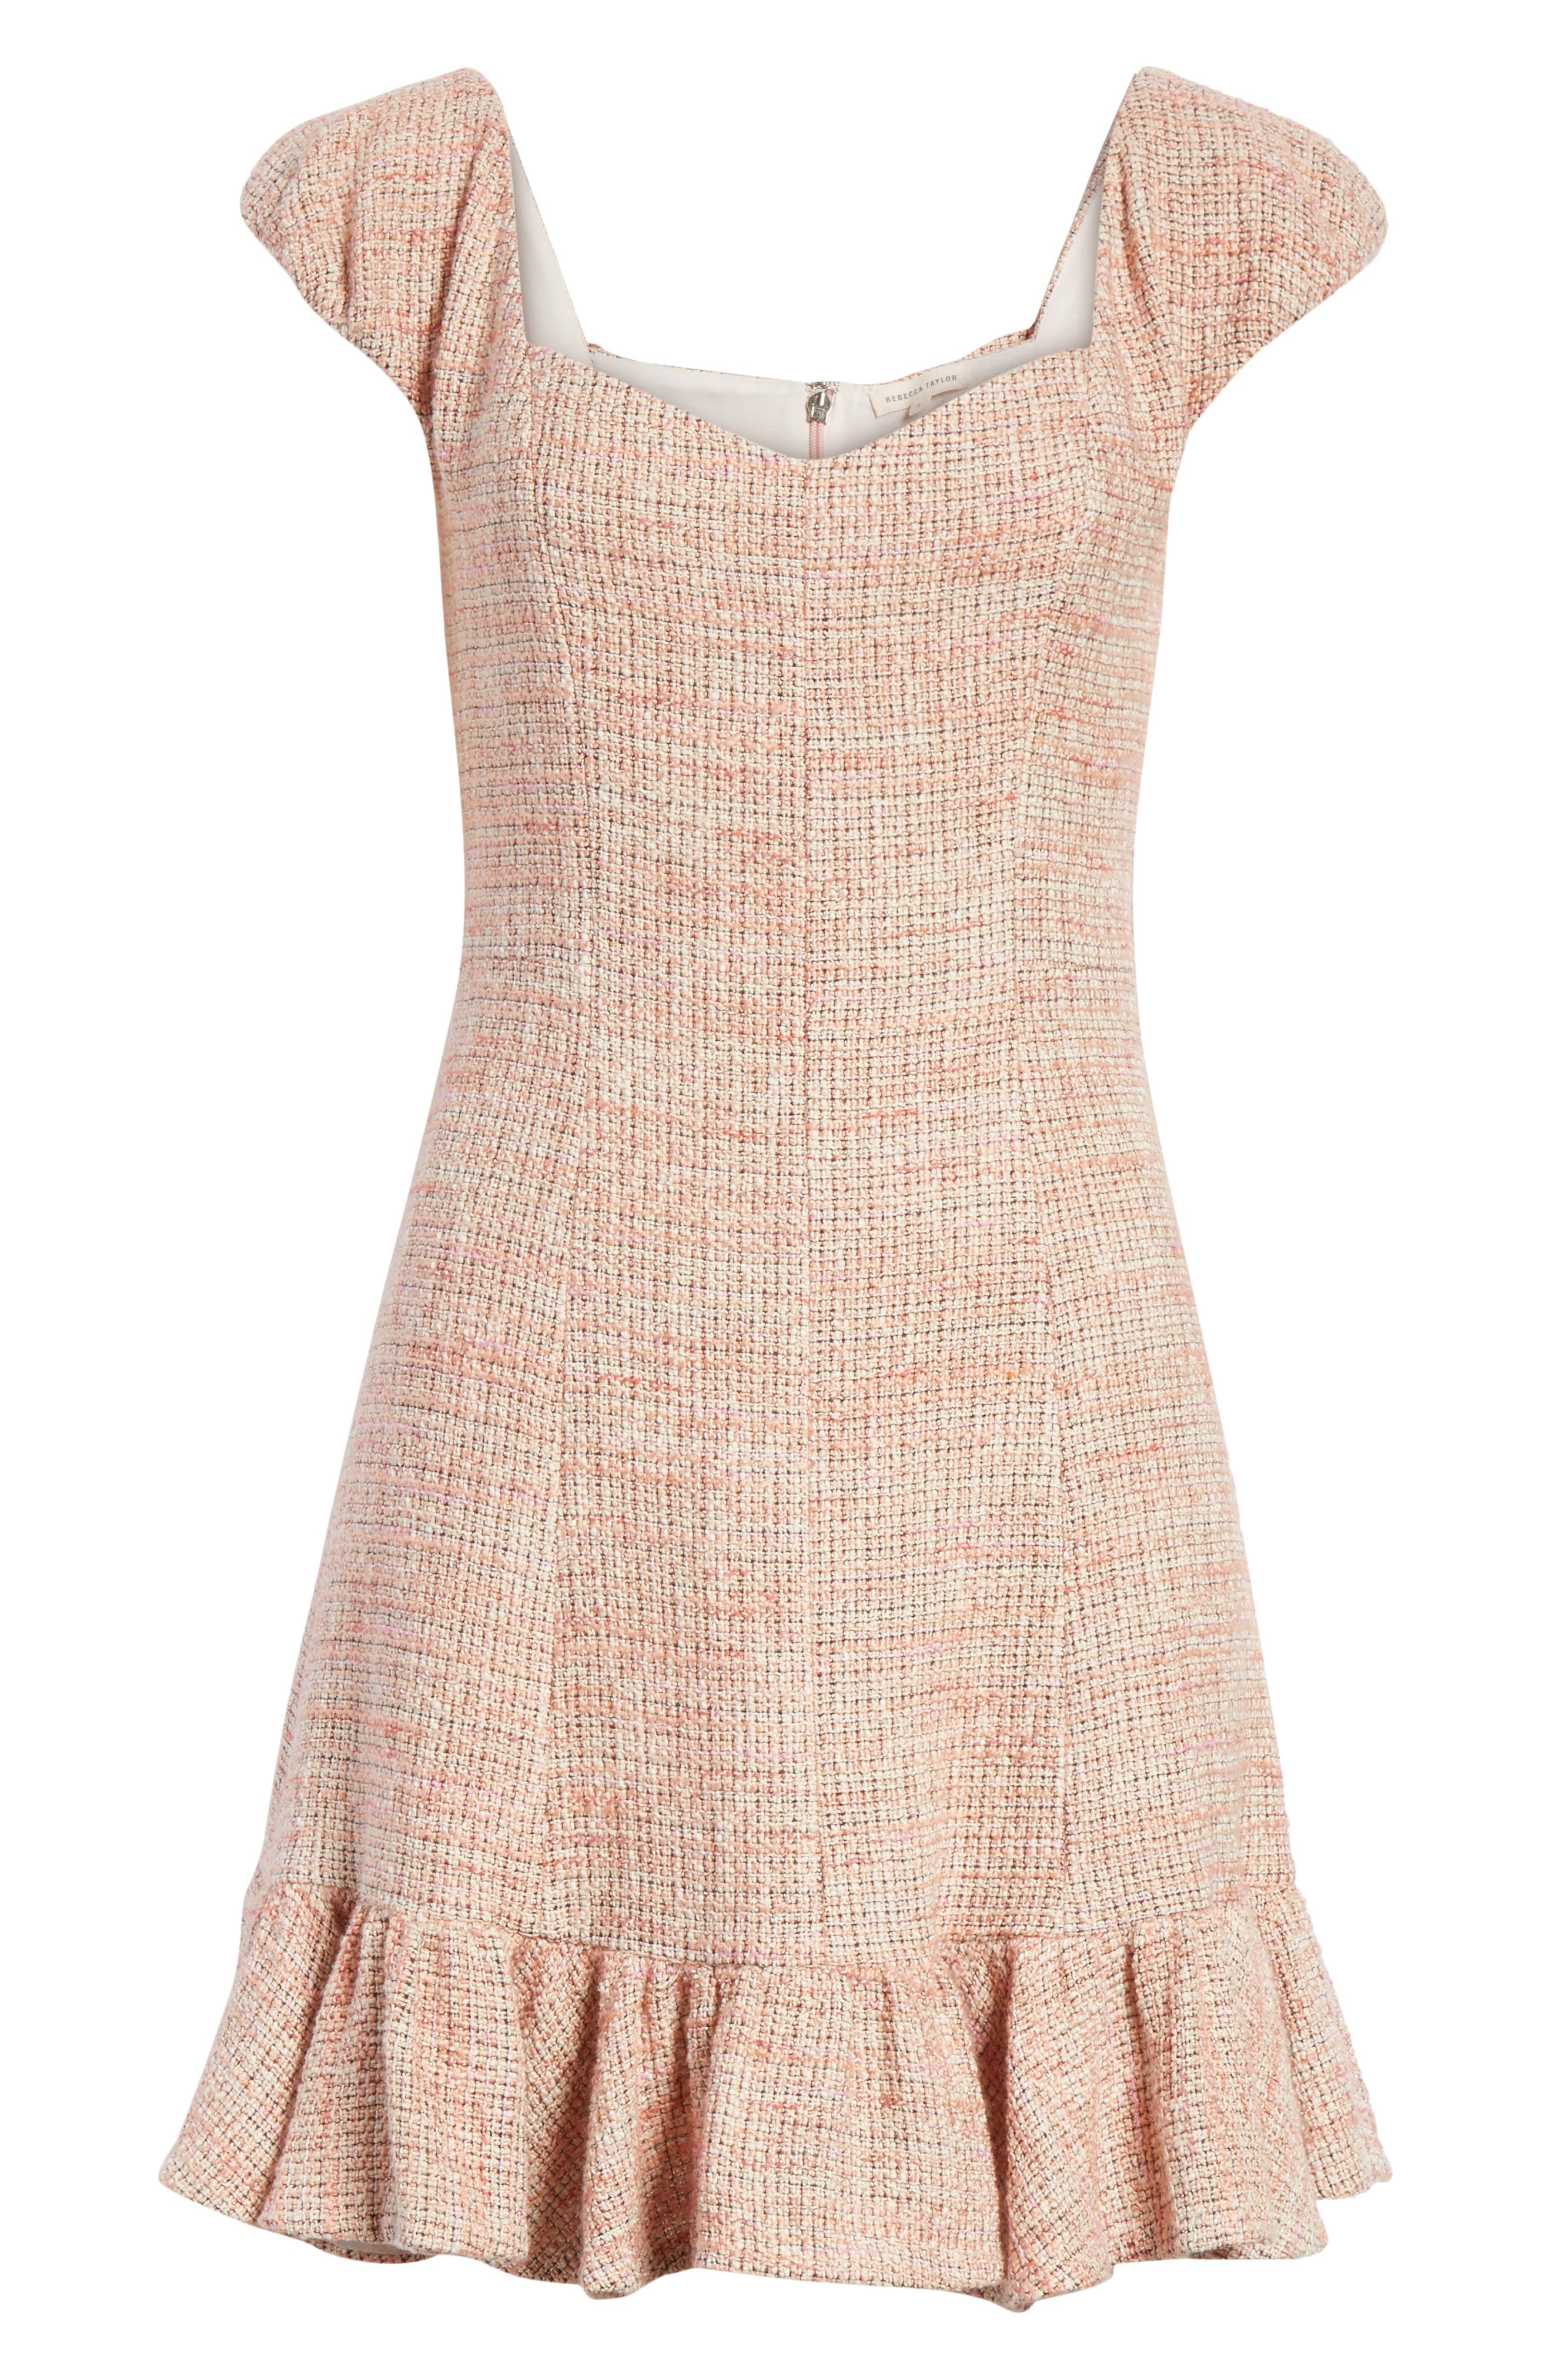 Cap Sleeve Tweed Dress,                             Alternate thumbnail 6, color,                             696